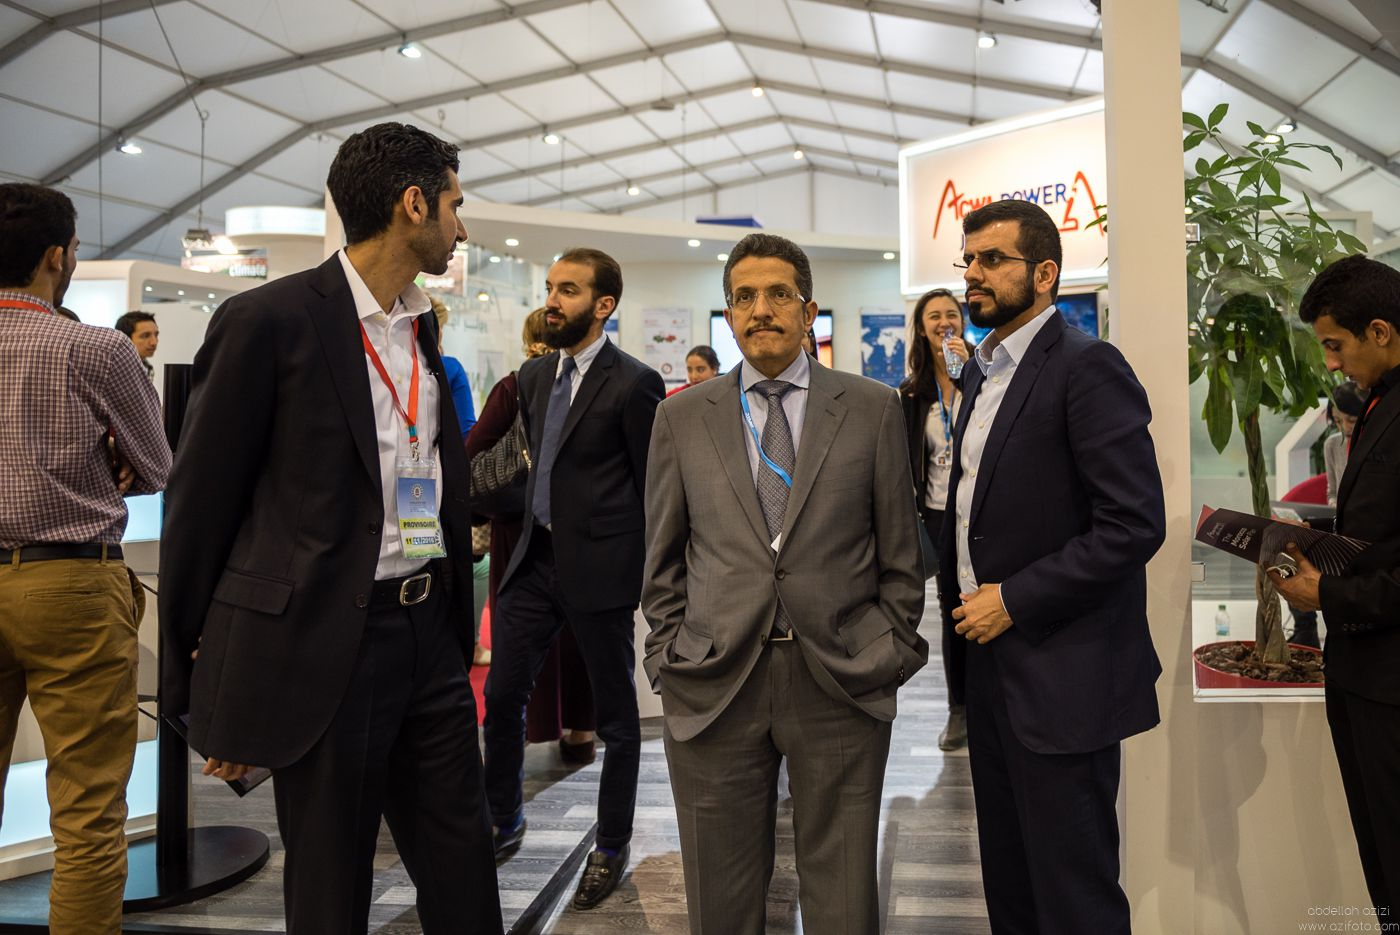 Mohammad Abunayyan is Chairman of Abunayyan Holding and ACWA Power International at COP22